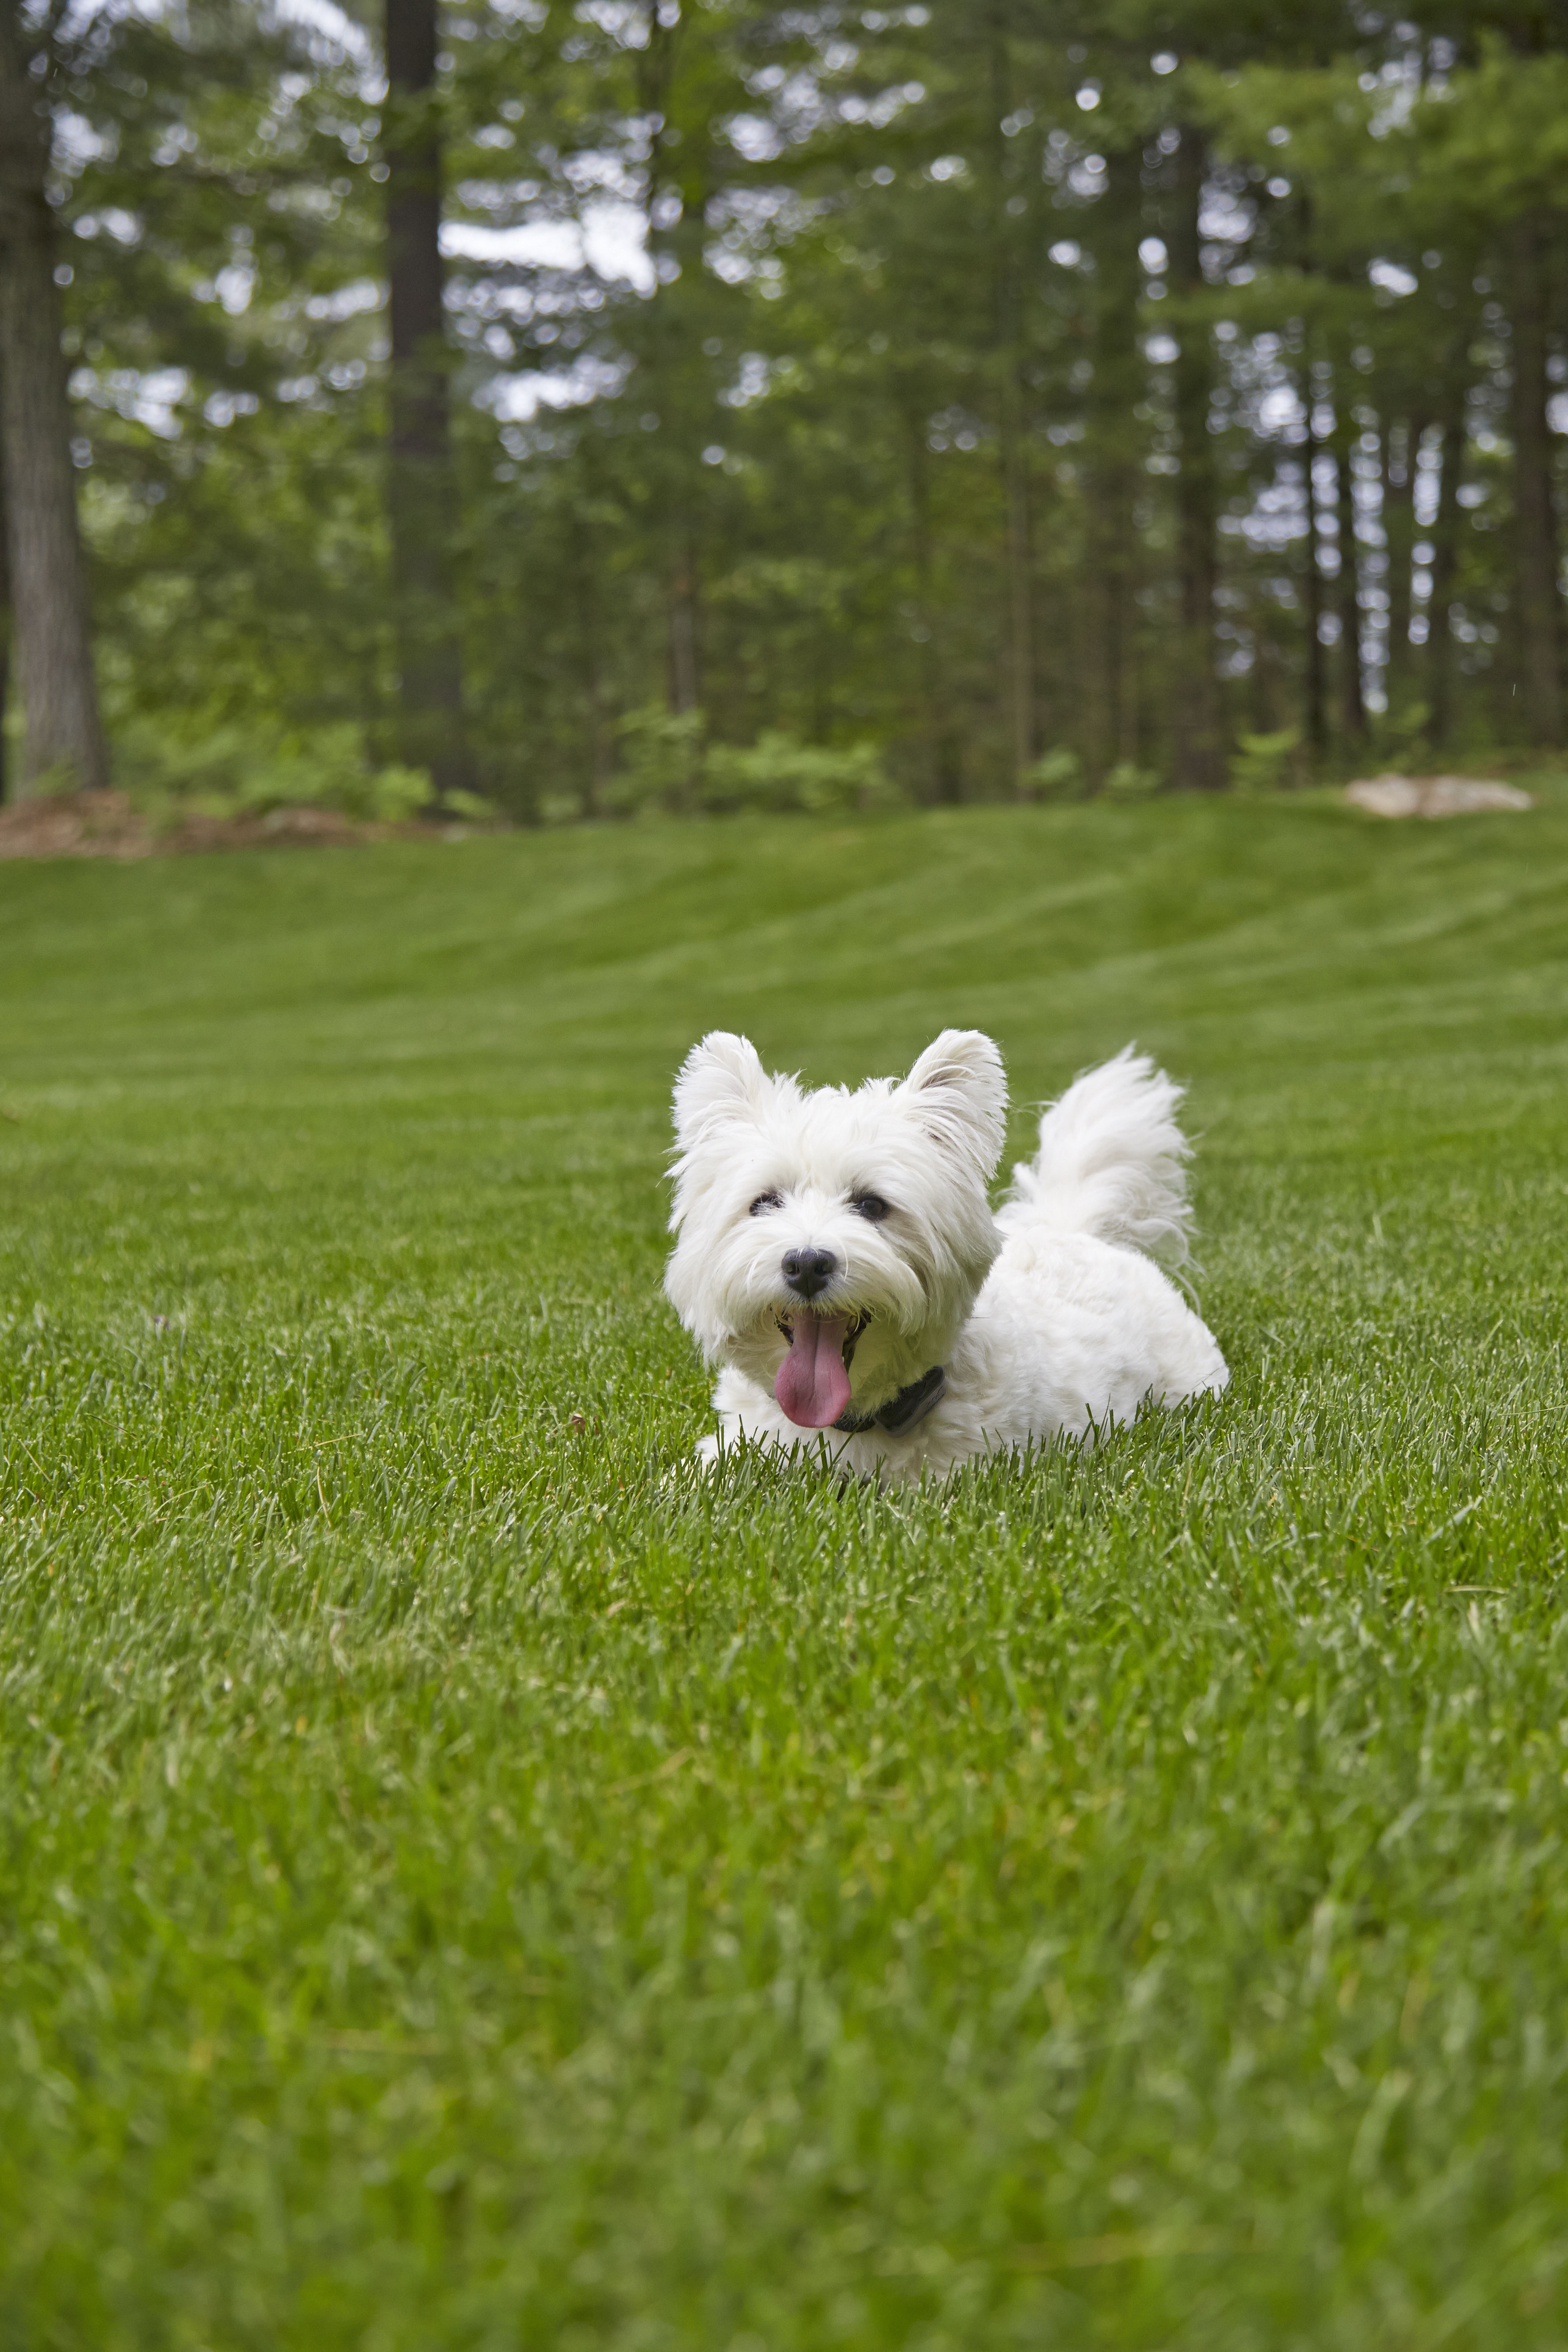 white dog on grass with tongue out